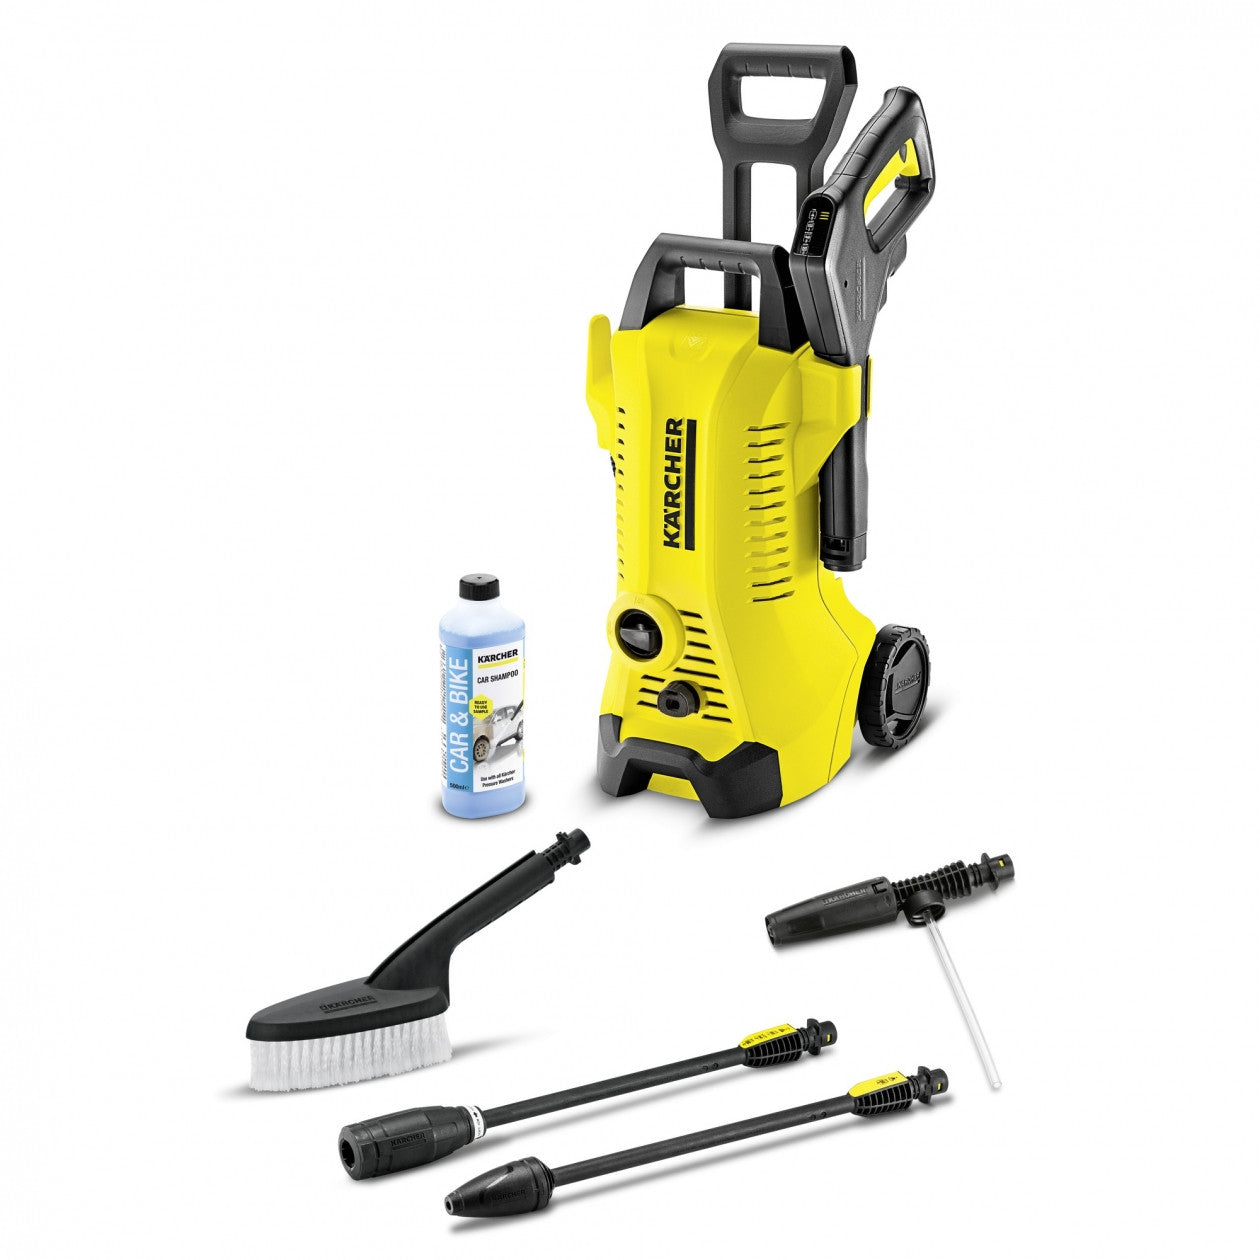 KARCHER K3 Full Control + Car Kit